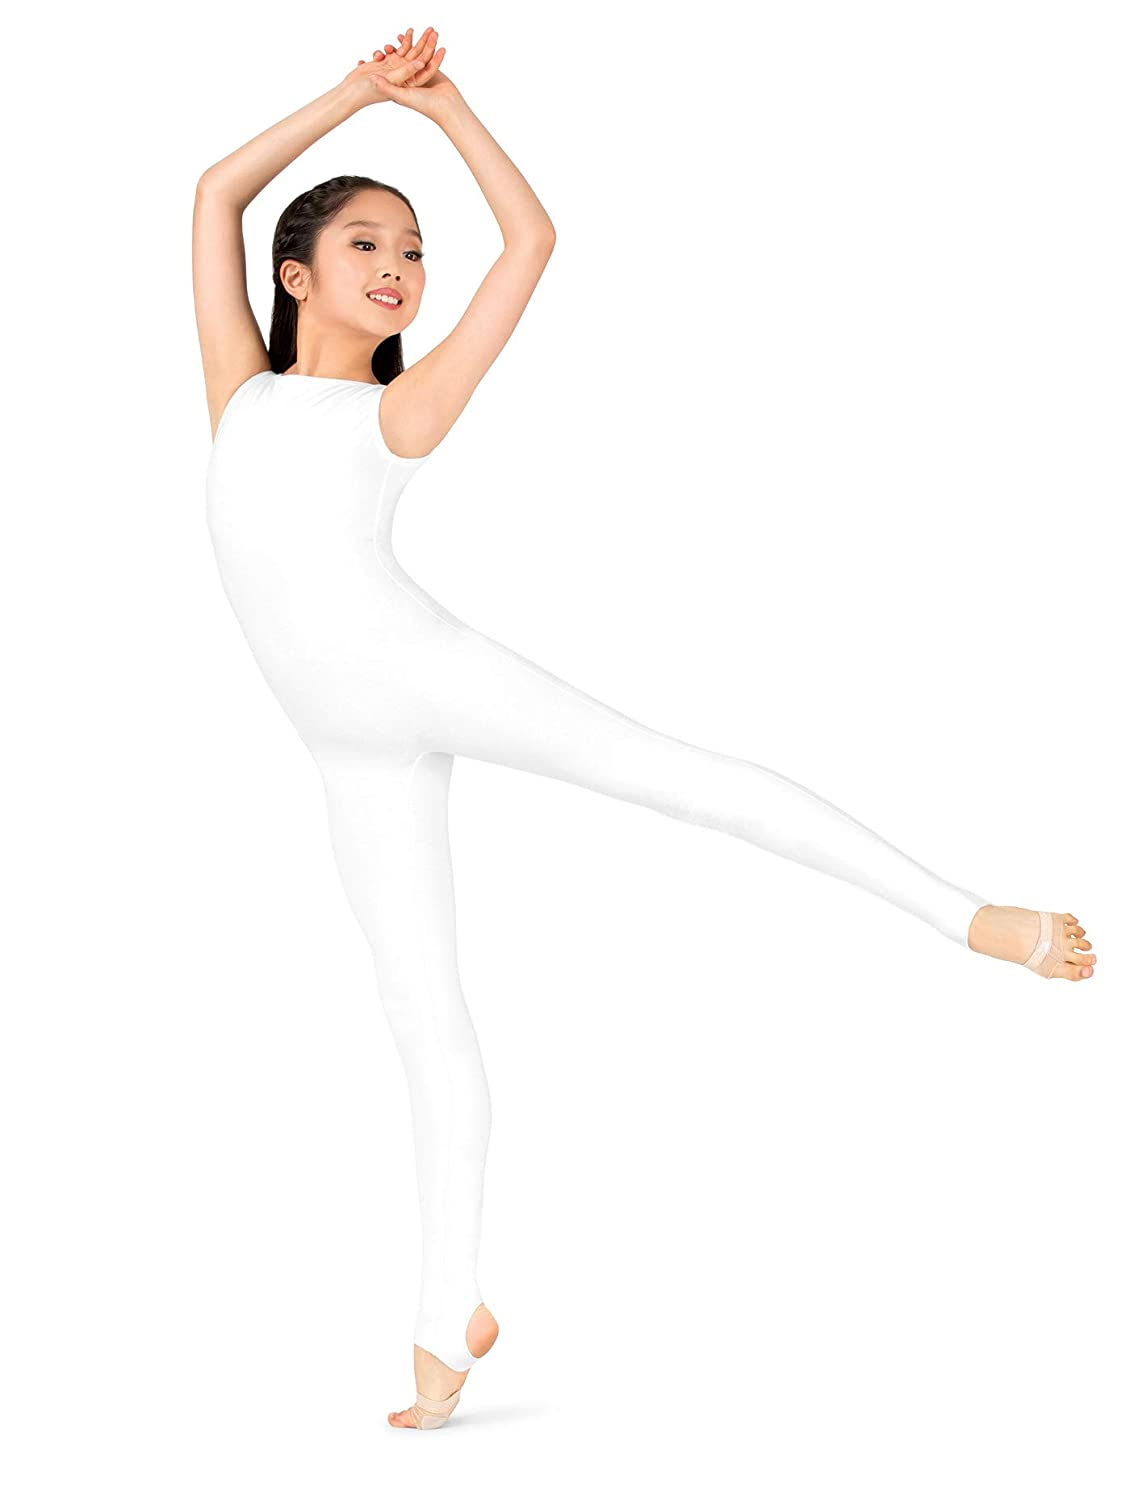 7249506dbc6327 Amazon.com: Womens Plus Size Sueded Cotton Deep V-Back Stirrup Dance  Unitard MM110PWHT1X White 1X: Clothing